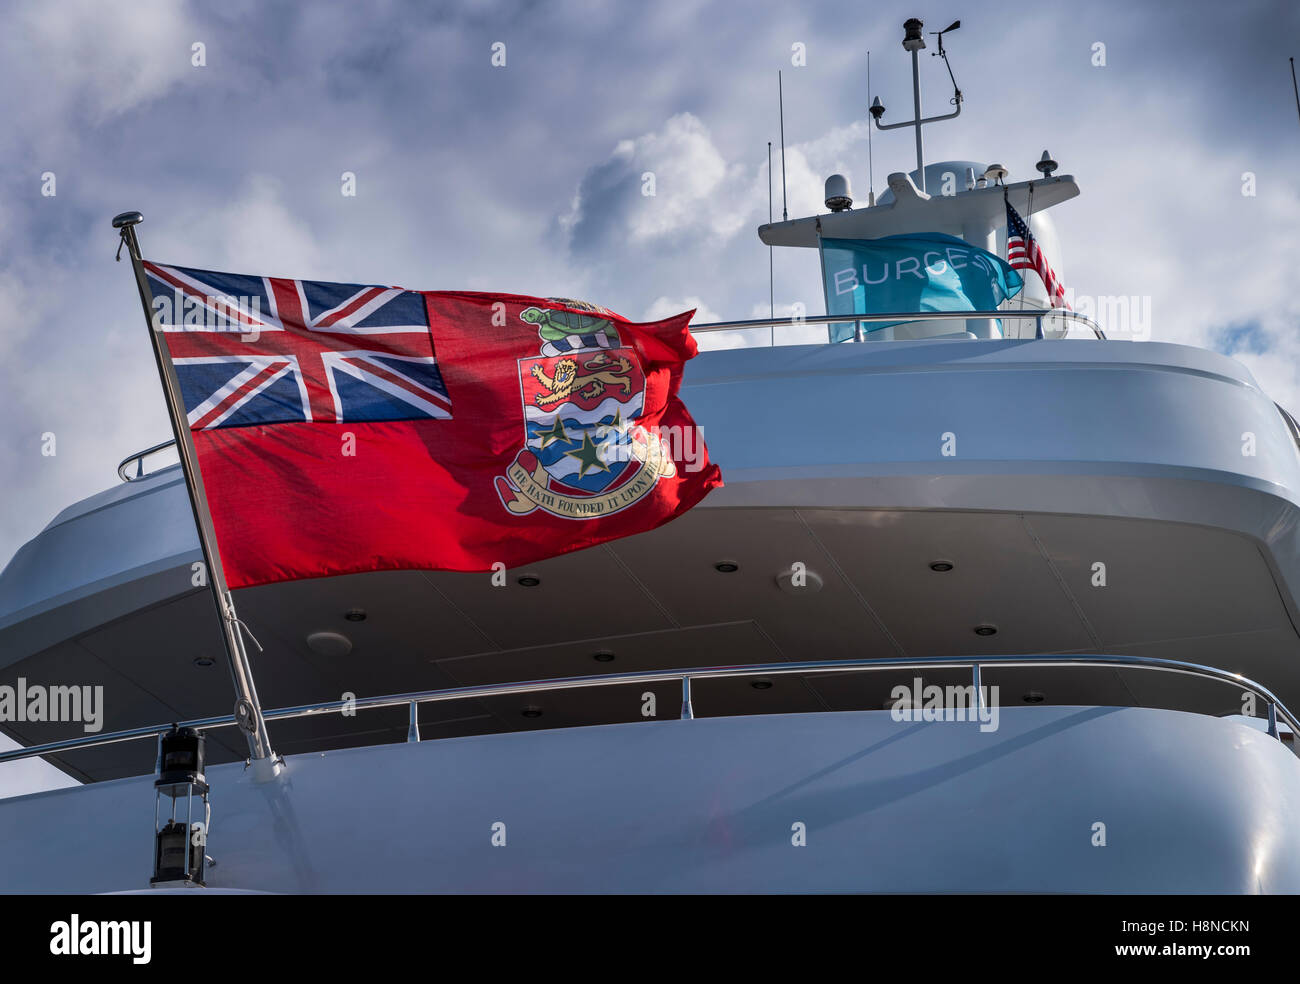 Cayman islands Red Ensign flag on a luxury superyacht Stock Photo